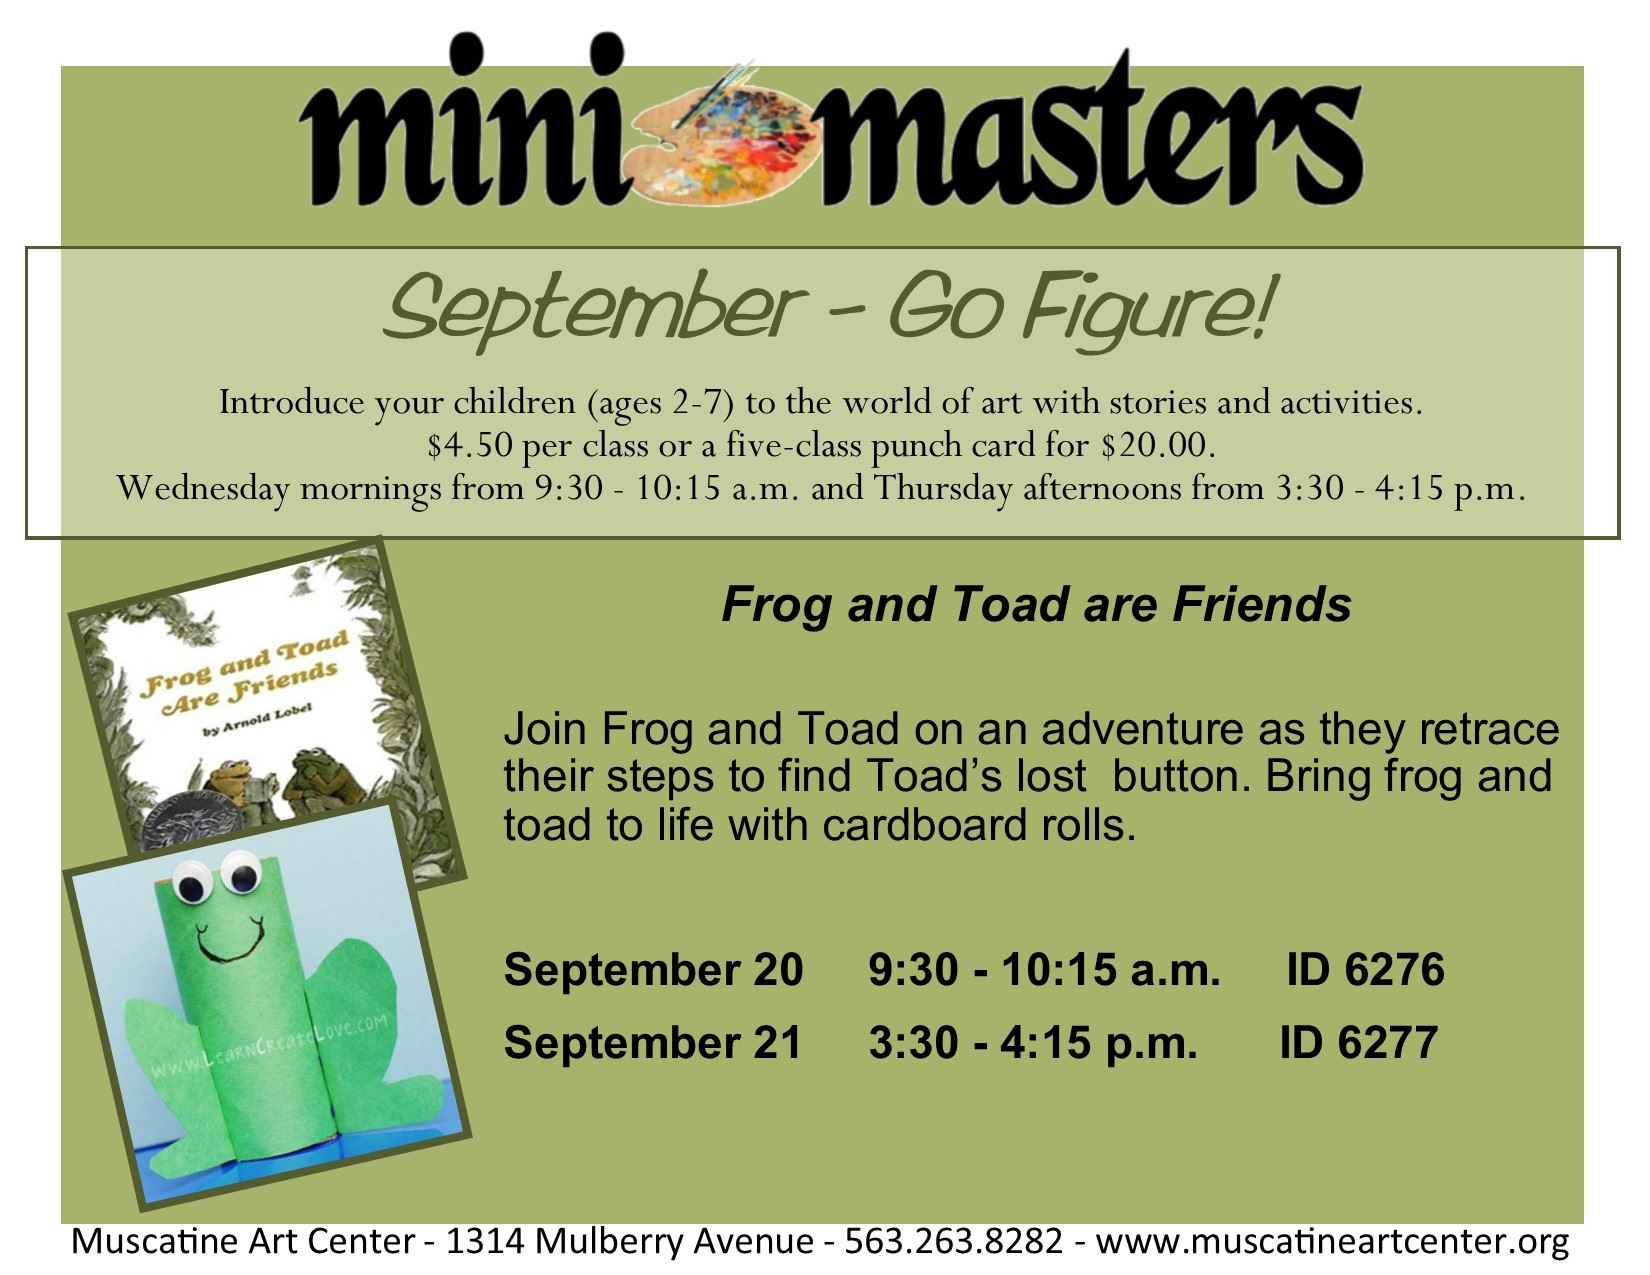 Sept 20-21 - Mini Masters - Frog and Toad are Friends